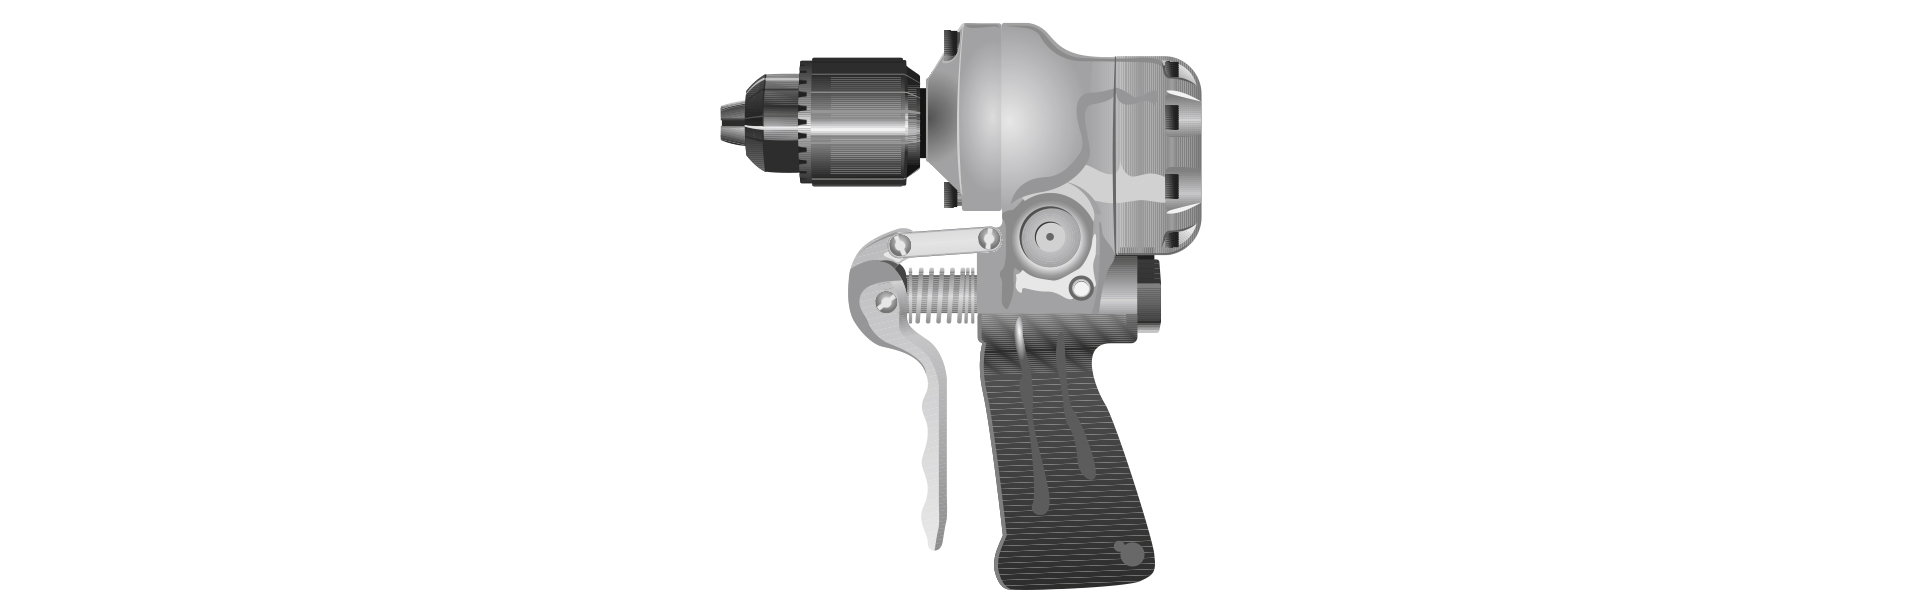 Image of a Hydraulic Drill